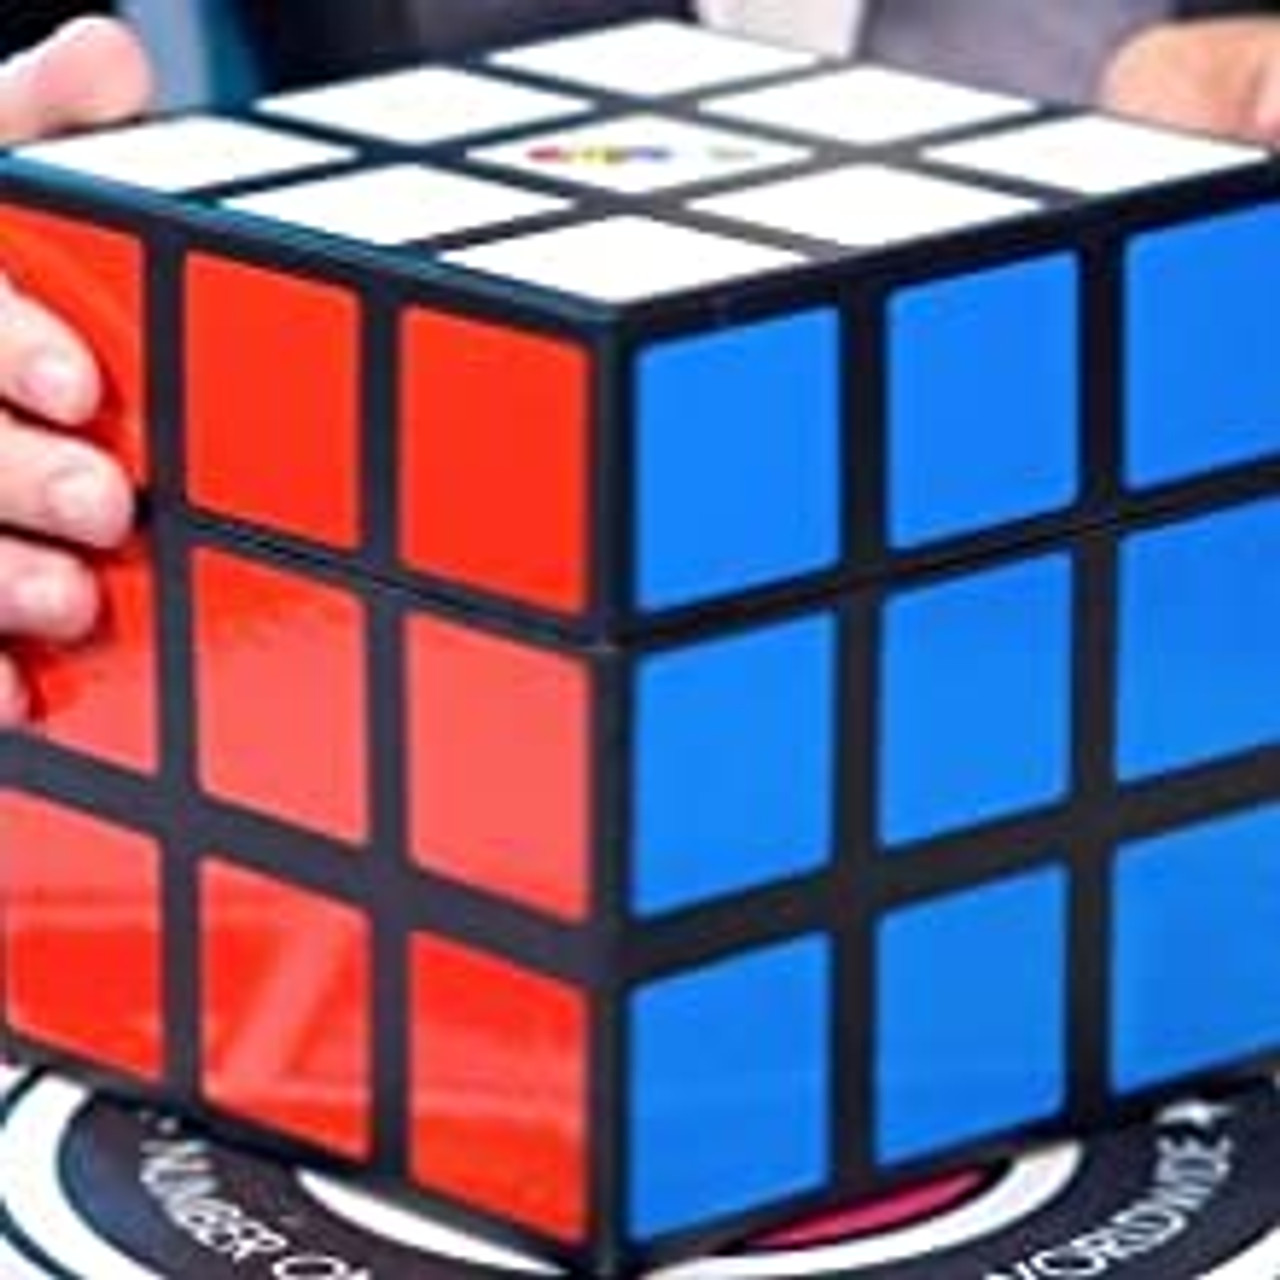 NEW - Rubiks Amazing Box of Magic Tricks - Fantastic Value Box of 40 Rubik's Themed Tricks and Illusions from Marvins Magic